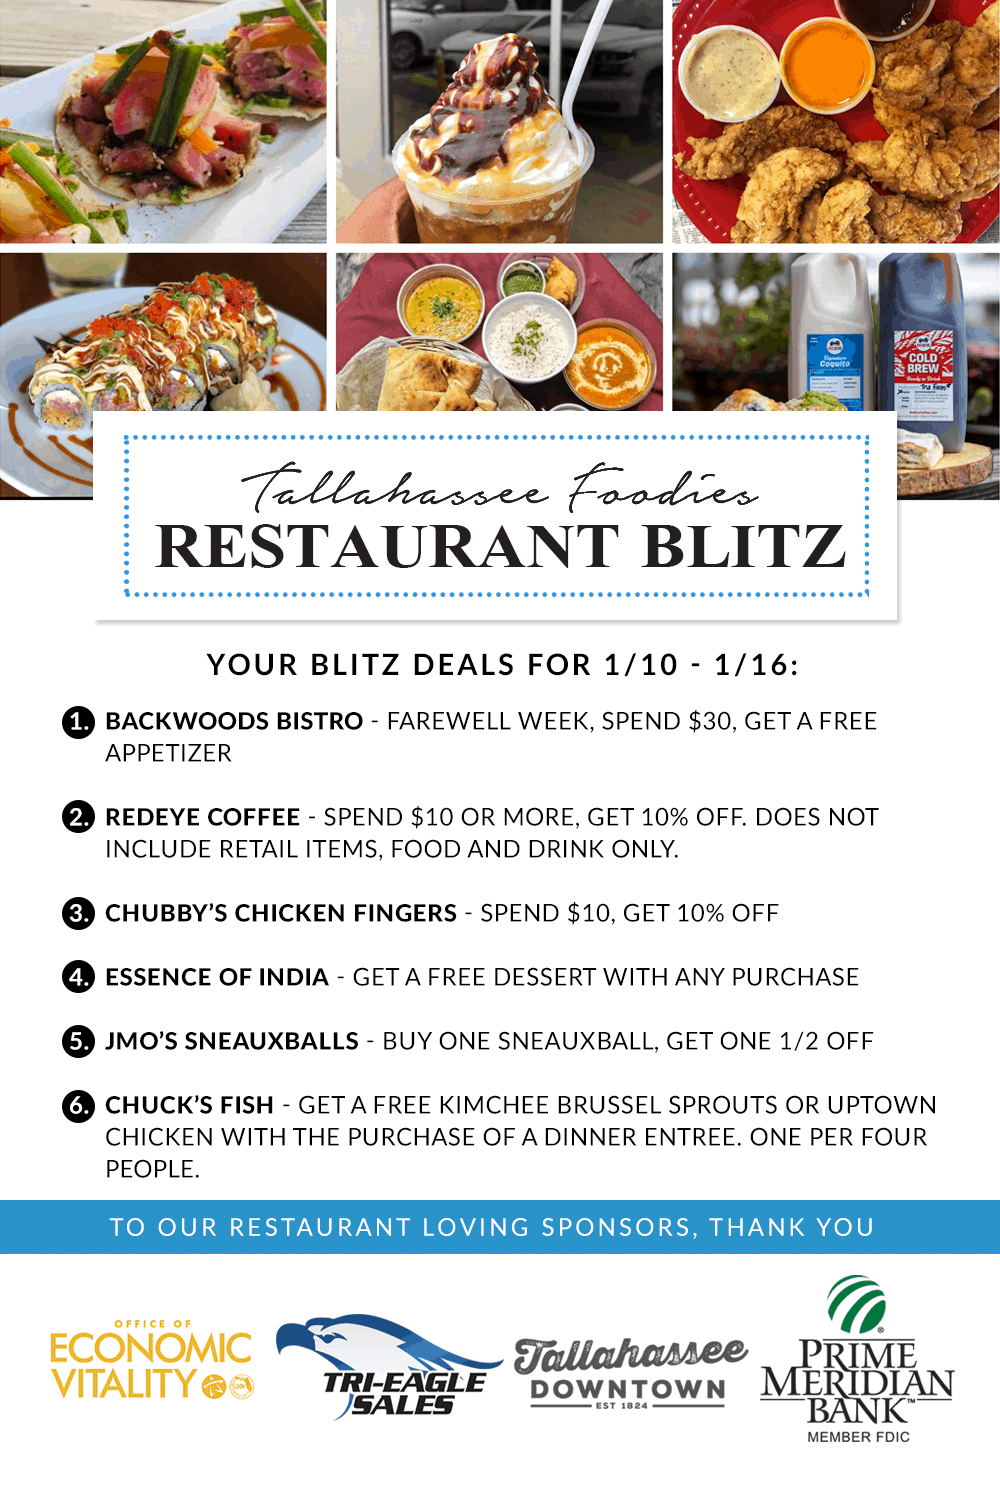 1. Backwoods Bistro - Farewell week, spend $30, get a free appetizer 2. RedEye Coffee - Spend $10 or more, get 10% off. Does not include retail items, food and drink only.  3. Chubby's Chicken Fingers - Spend $10, get 10% off 4. Essence Of India - Get a free dessert with any purchase 5. JMO's SneauxBalls - Buy one Sneauxball, get one 1/2 off 6. Chuck's Fish - get a free kimchee brussel sprouts or uptown chicken with the purchase of a dinner entree. One per four people.